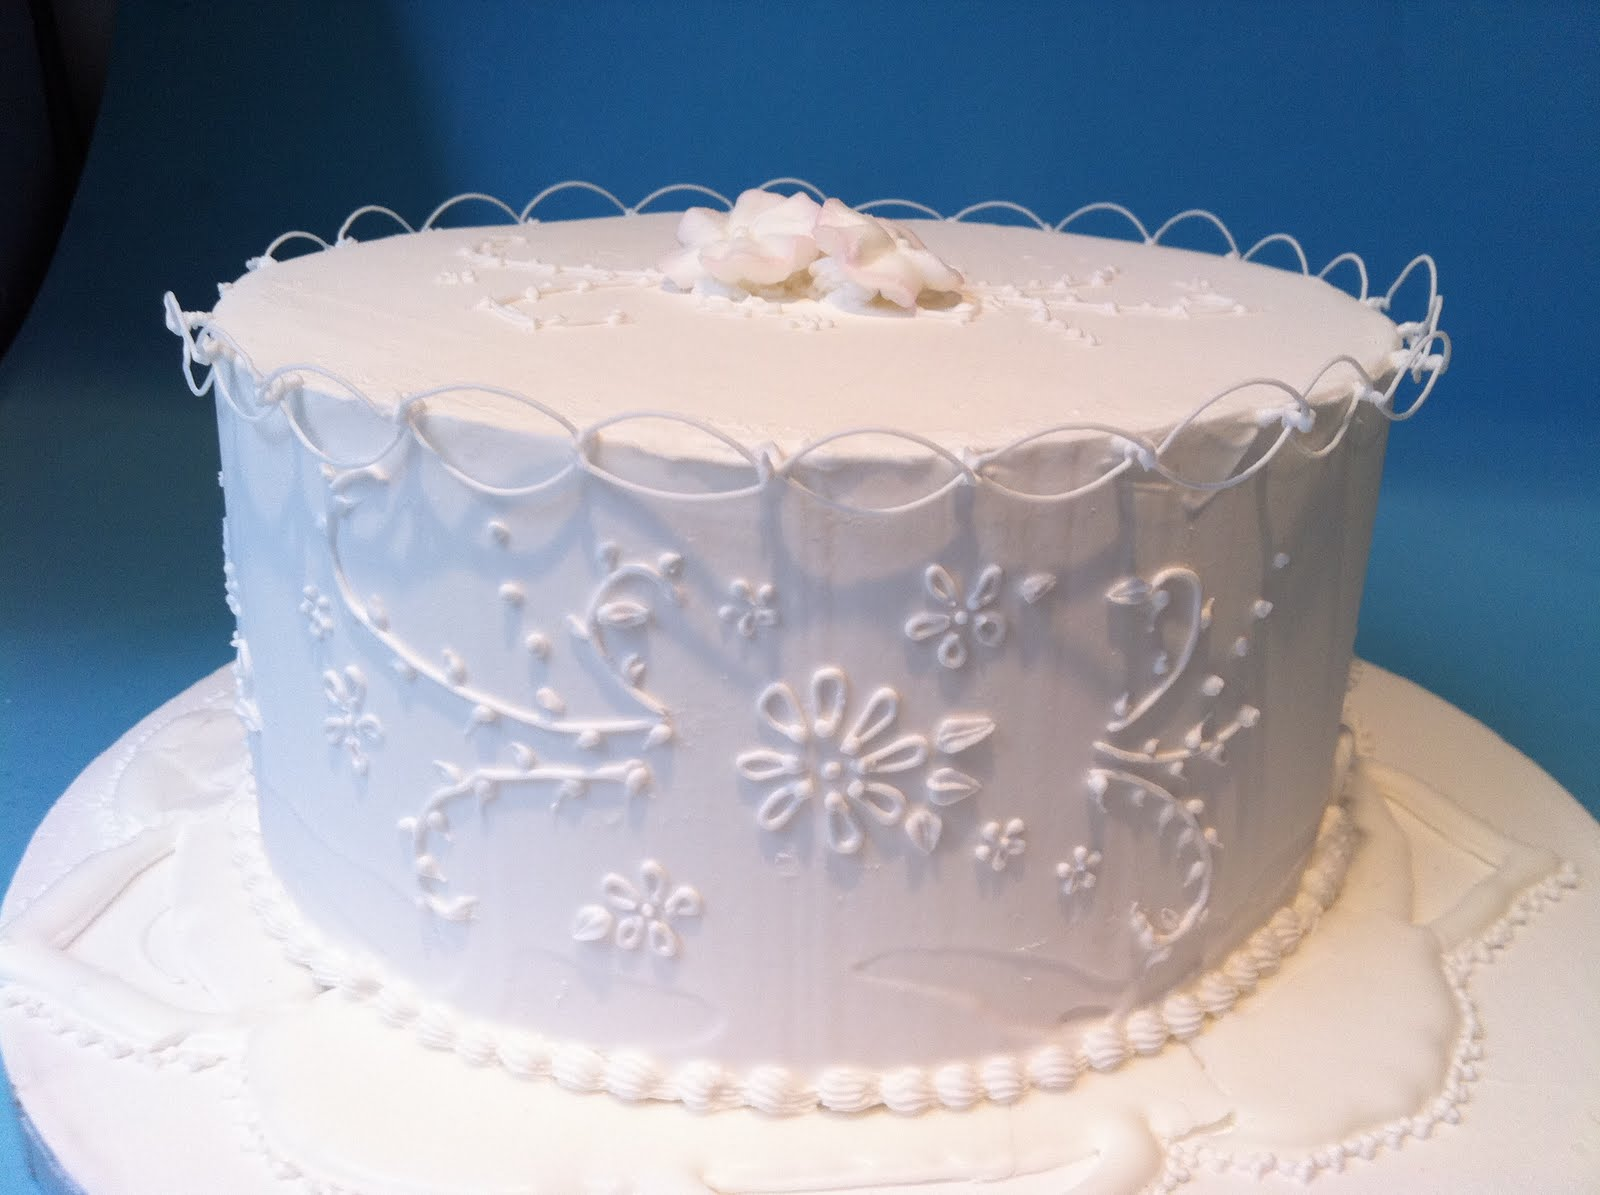 1000 images about Wedding Cake Frosting Designs on Pinterest